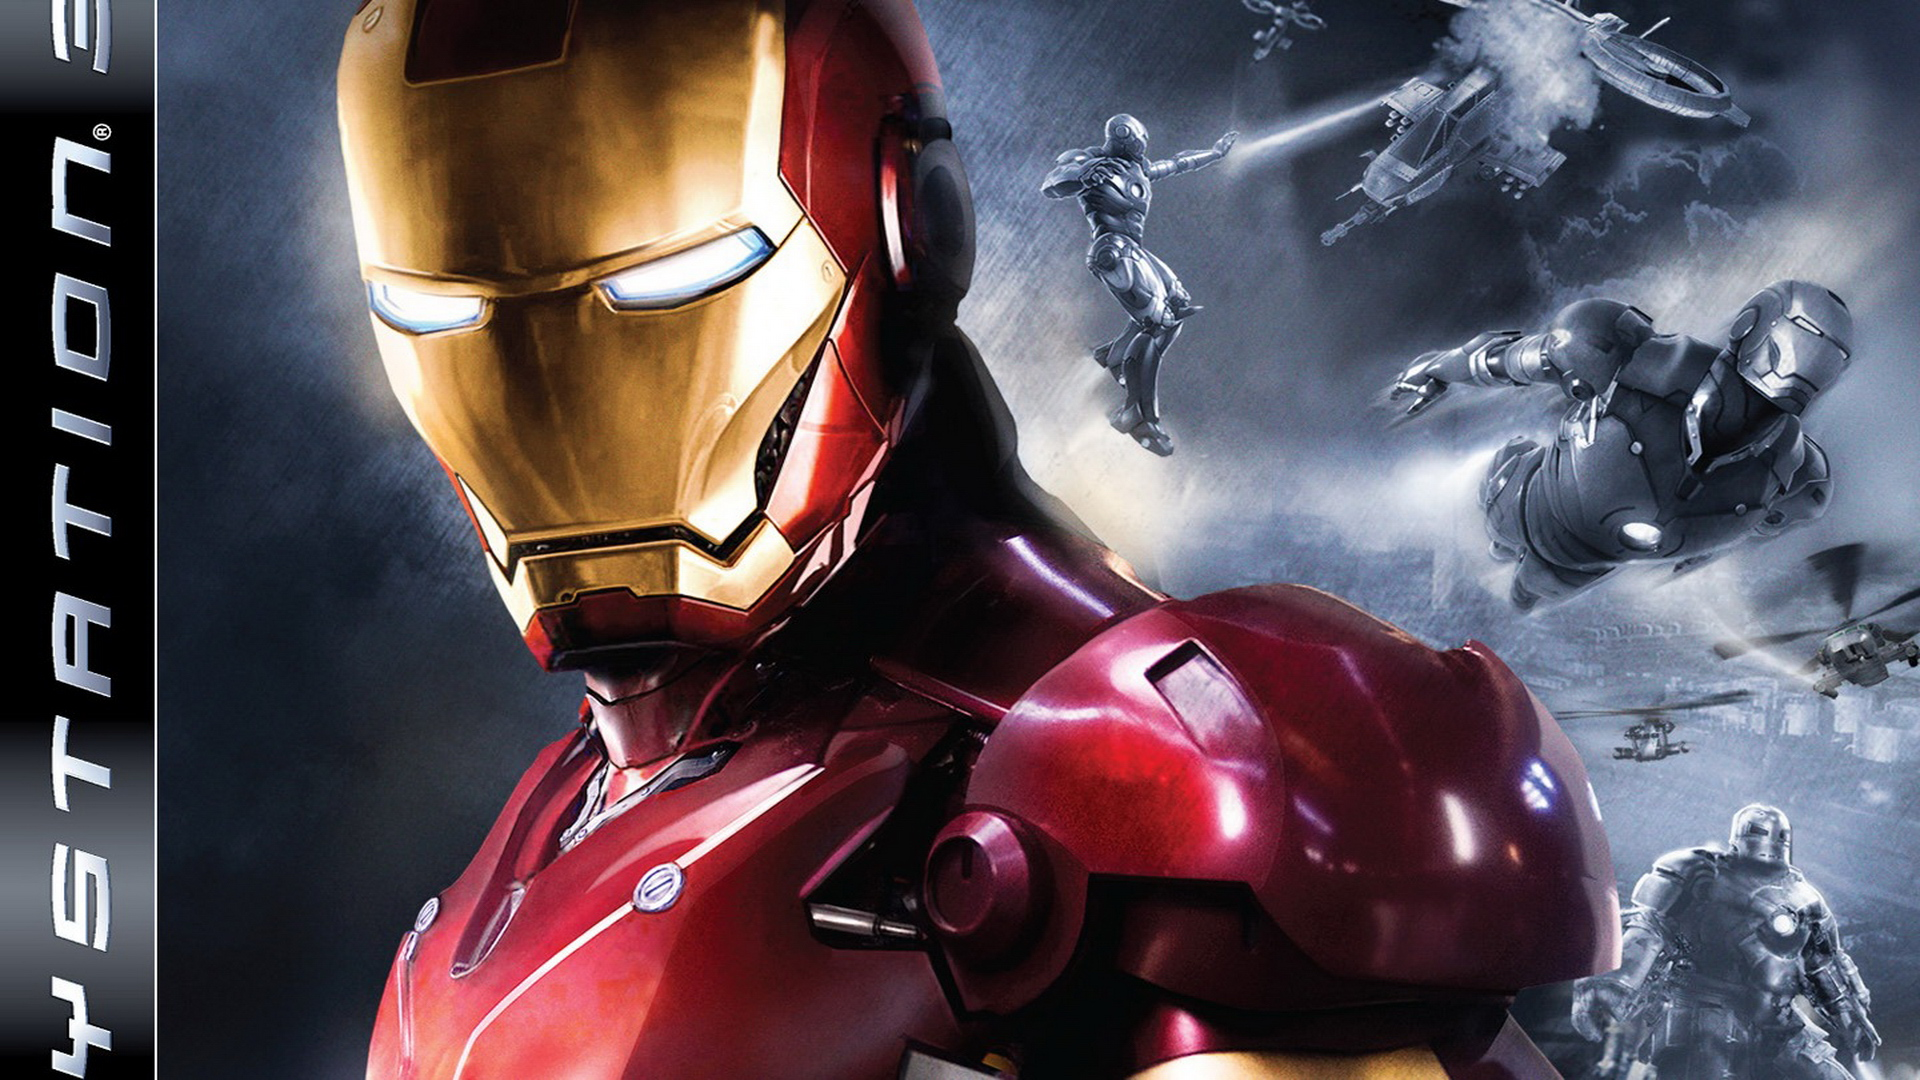 Iron Man Wallpapers Full Hd Desktop Background: Iron Man HD Wallpapers 1080p